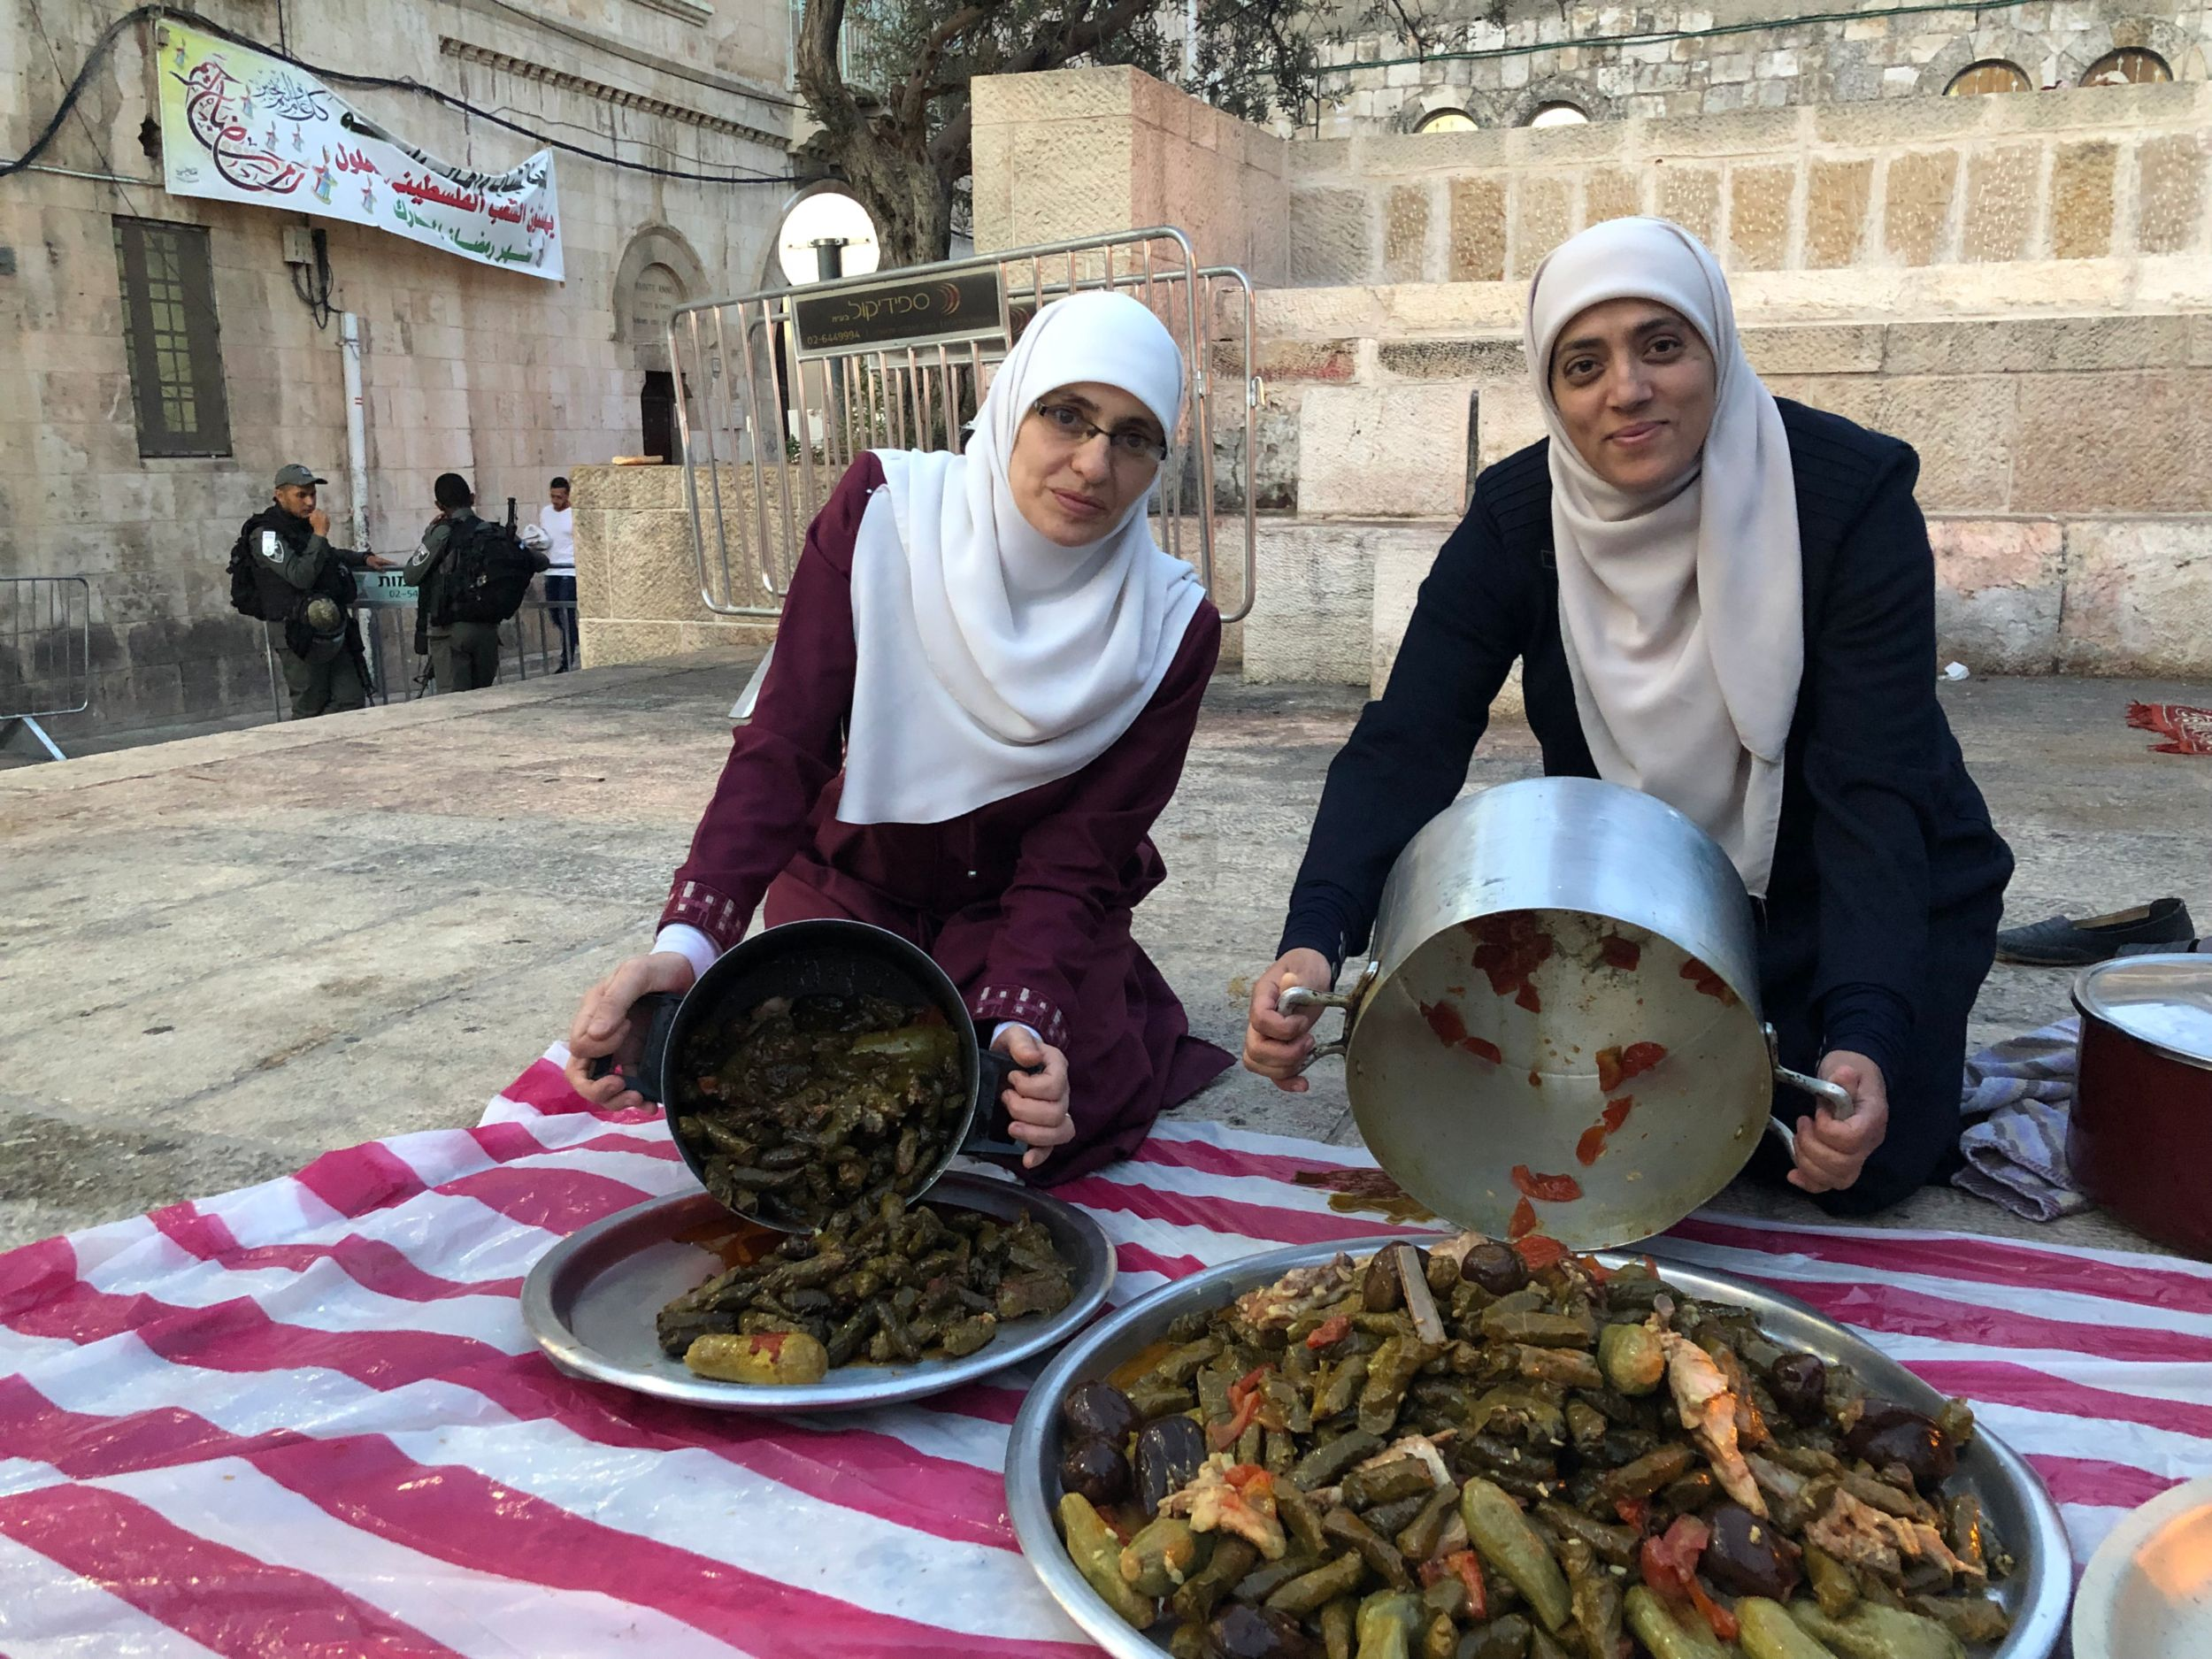 Halawani, left, and Khweiss organised iftars outside of Al-Aqsa during the Muslim holy month of Ramadan (MEE/Juman Abu Arafeh)